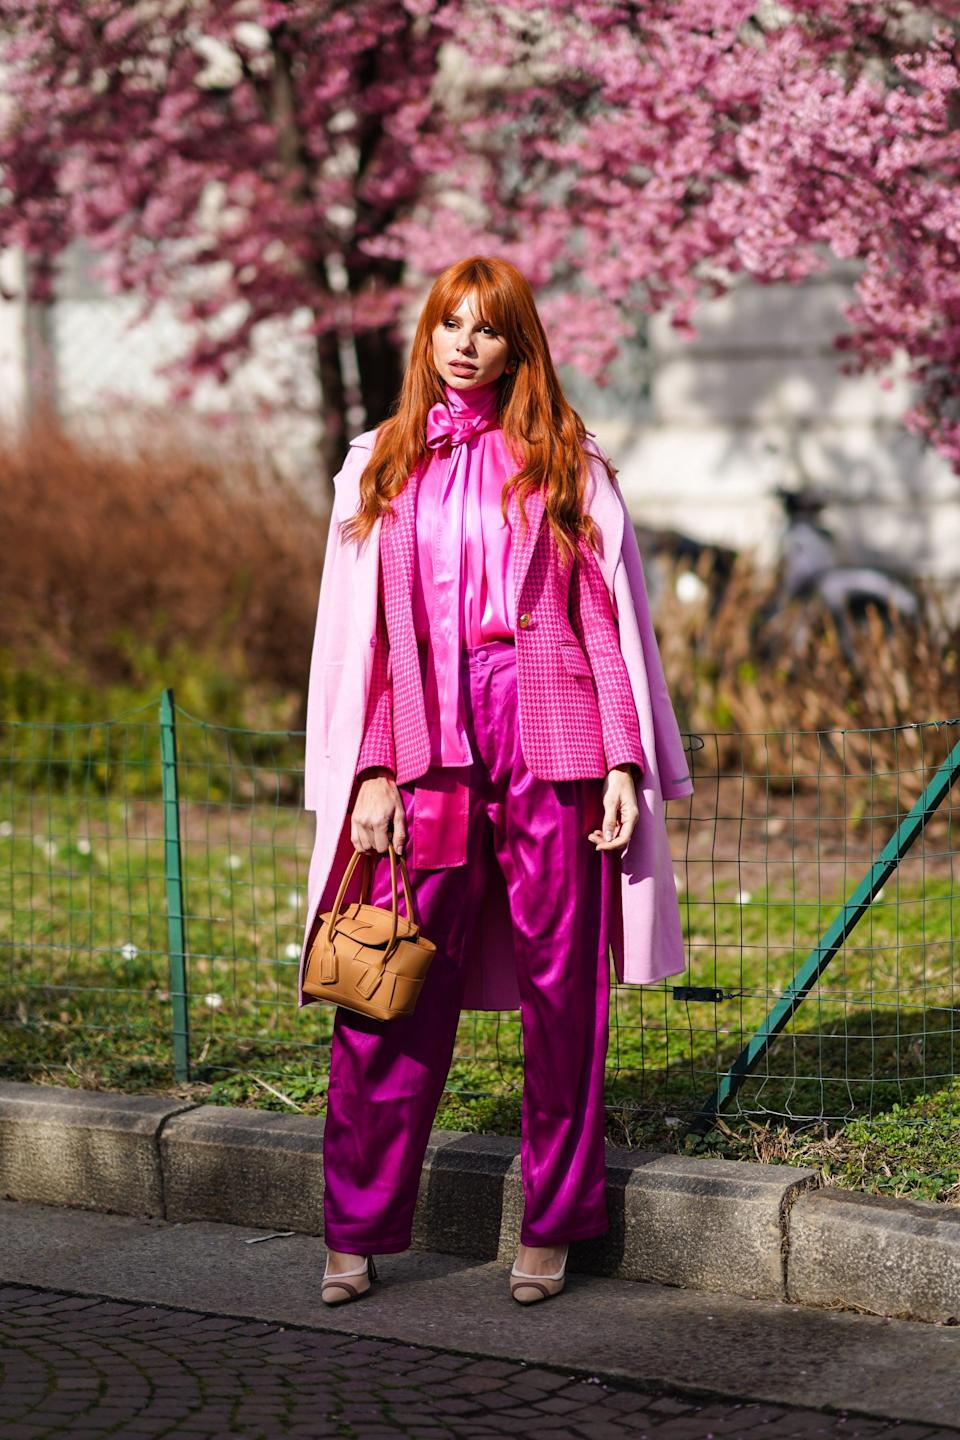 """<p>Red is the power color for fire sign Aries, which means the warm, copper """"tiger daylily"""" hair color trend is made for you. Thanks to Beth Harmon from <strong>The Queen's Gambit</strong>, the shade is having a major moment this year.</p>"""